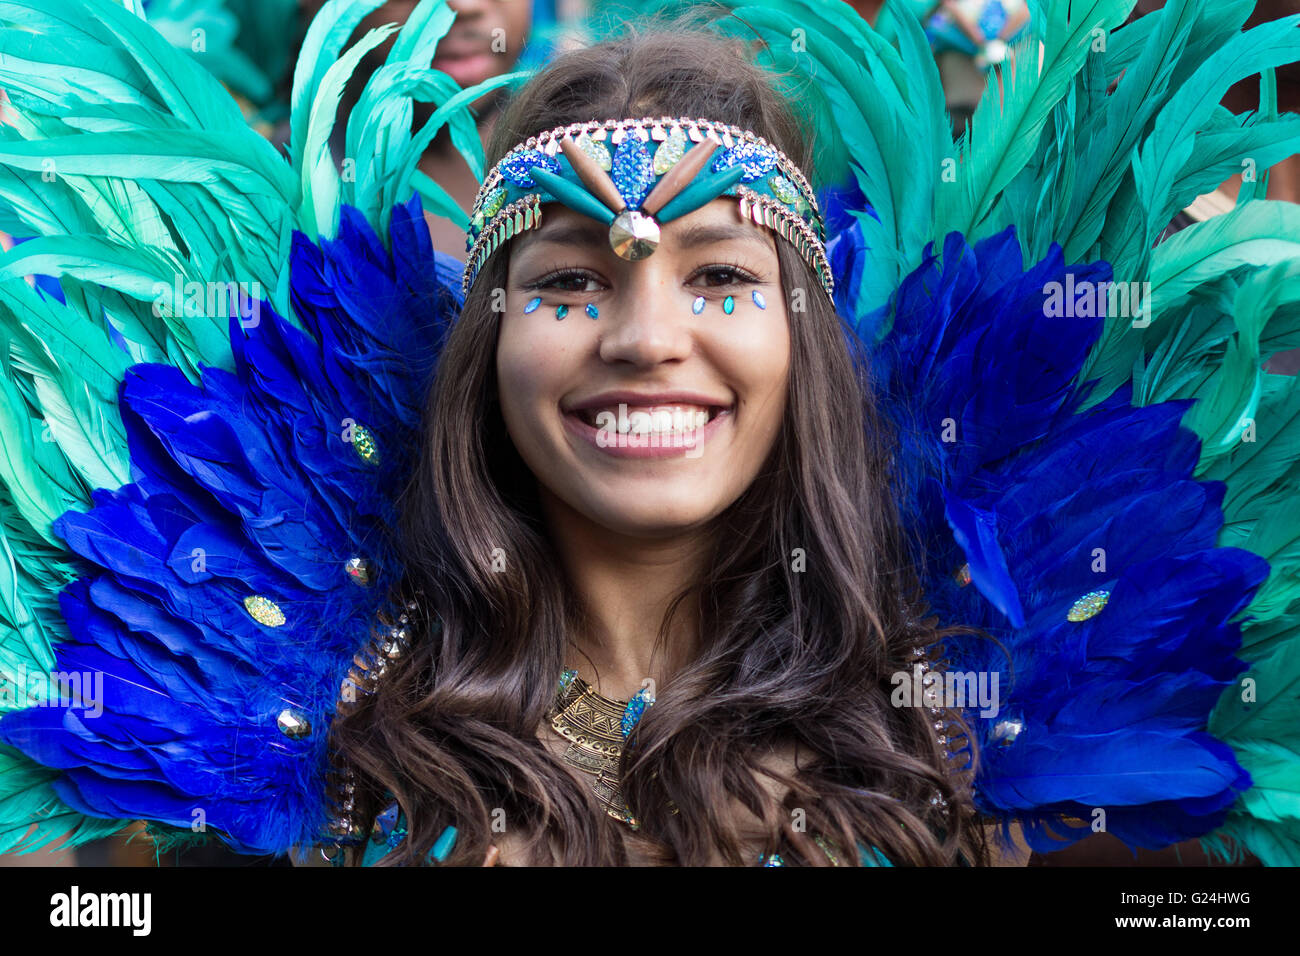 Berlin, Allemagne Le 15 mai 2016: Beautiful Girl in costume smiling on Carnaval des Cultures (Karneval der Photo Stock